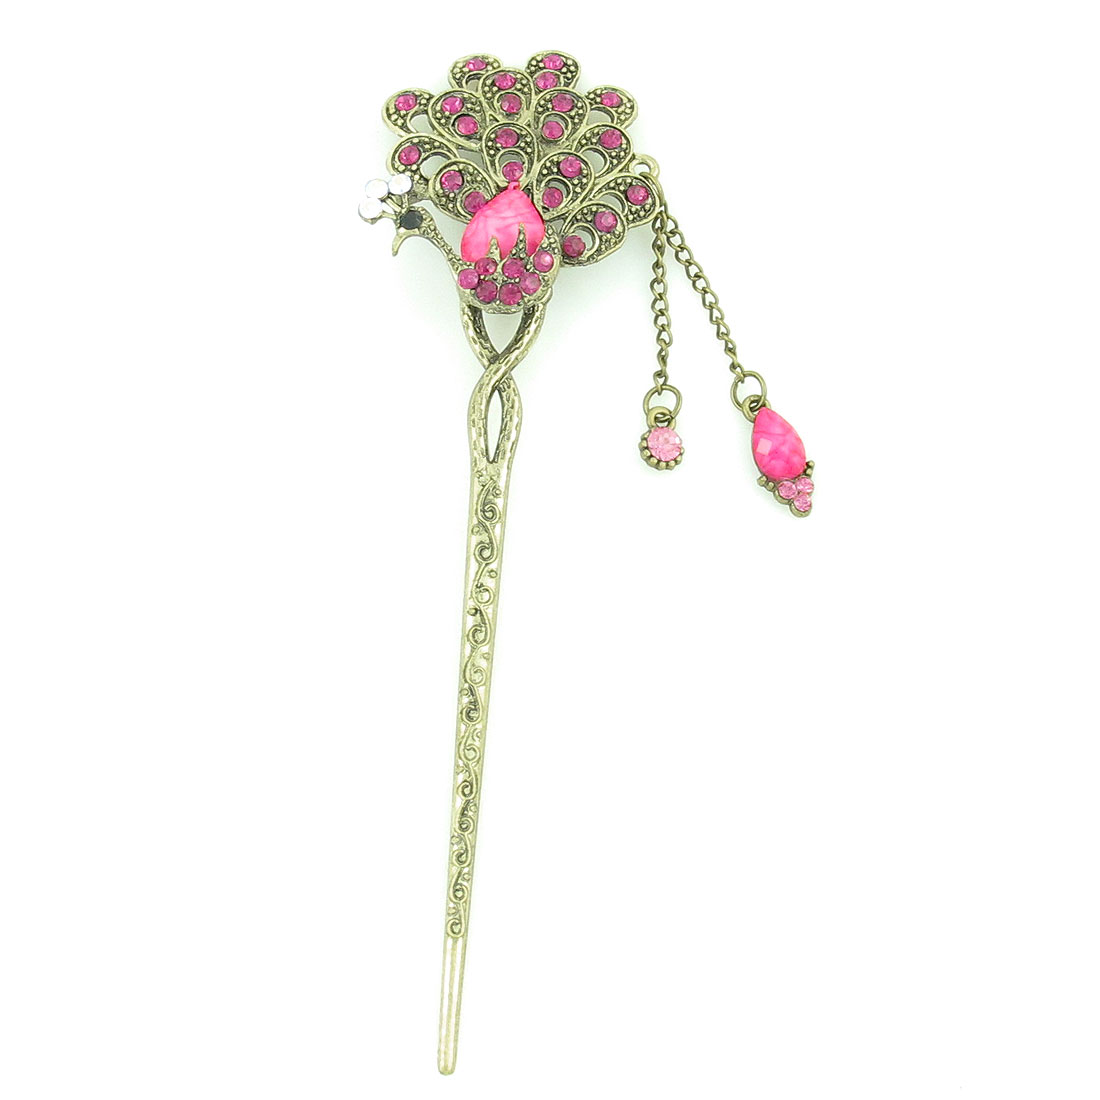 Bronze Tone Fuchsia Beads Inlaid Peacock Decor Hairpin for Lady